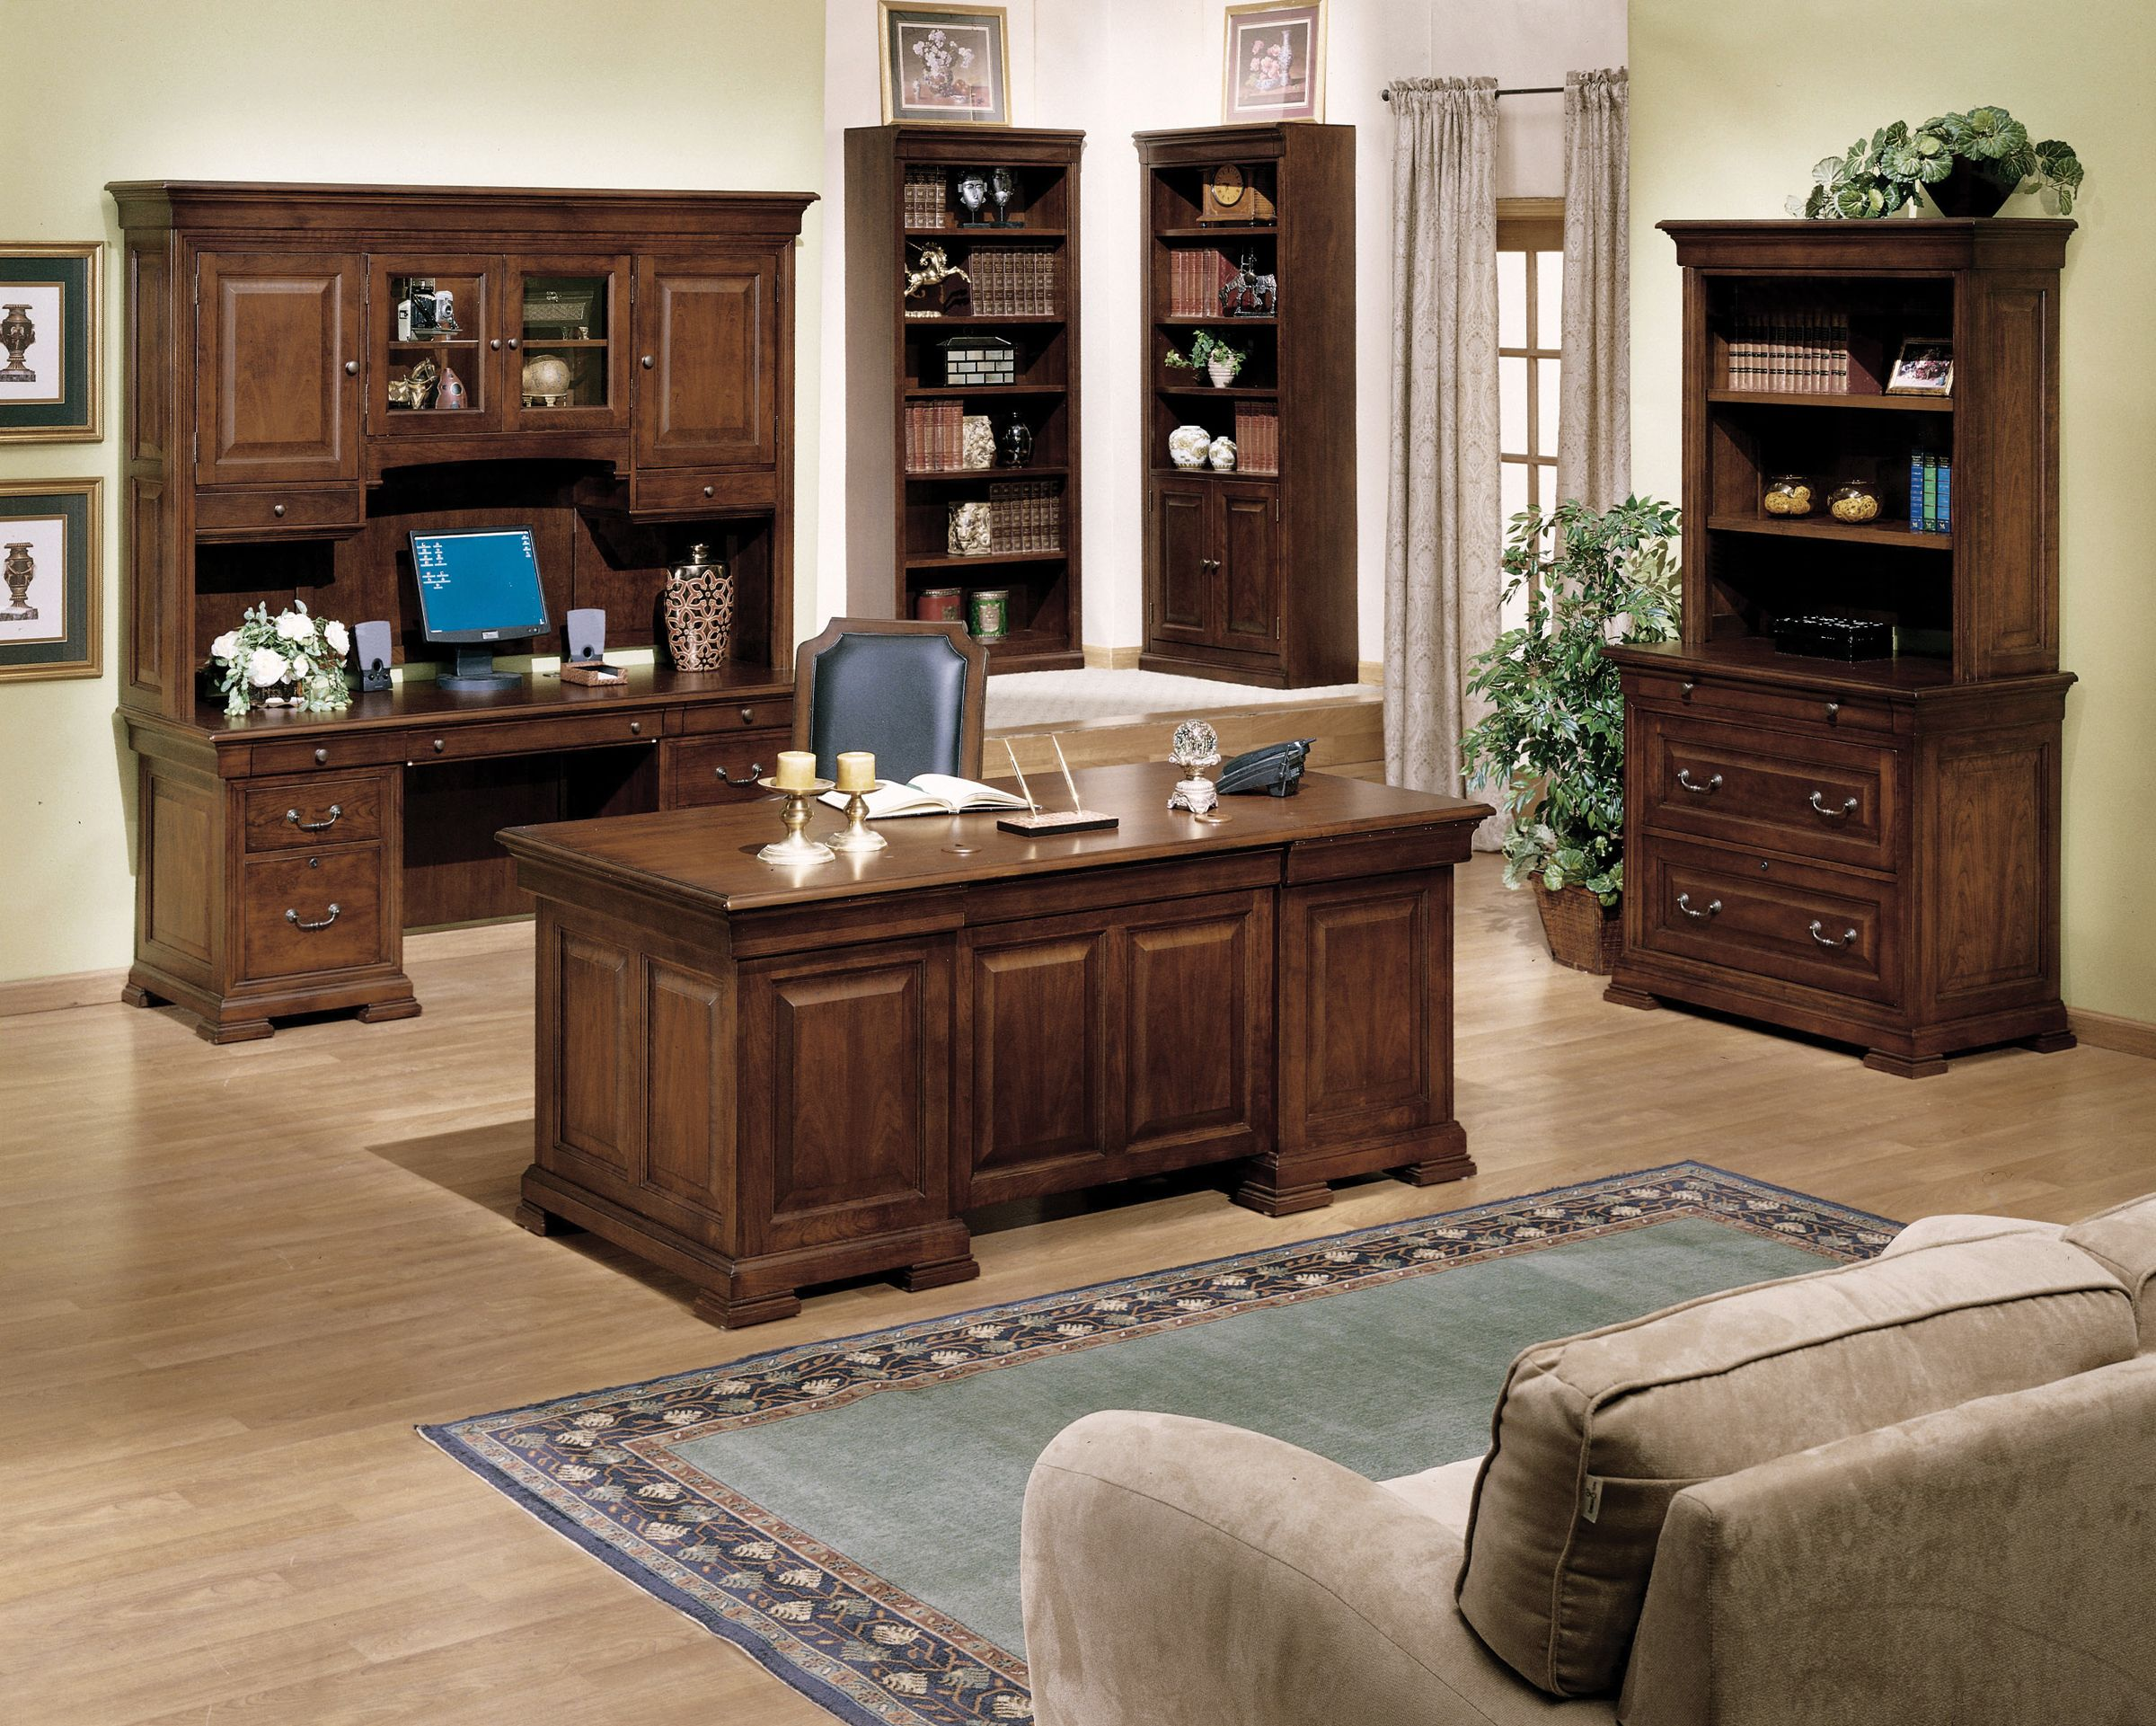 Executive Office Furniture: Executive Office Decorating Tips